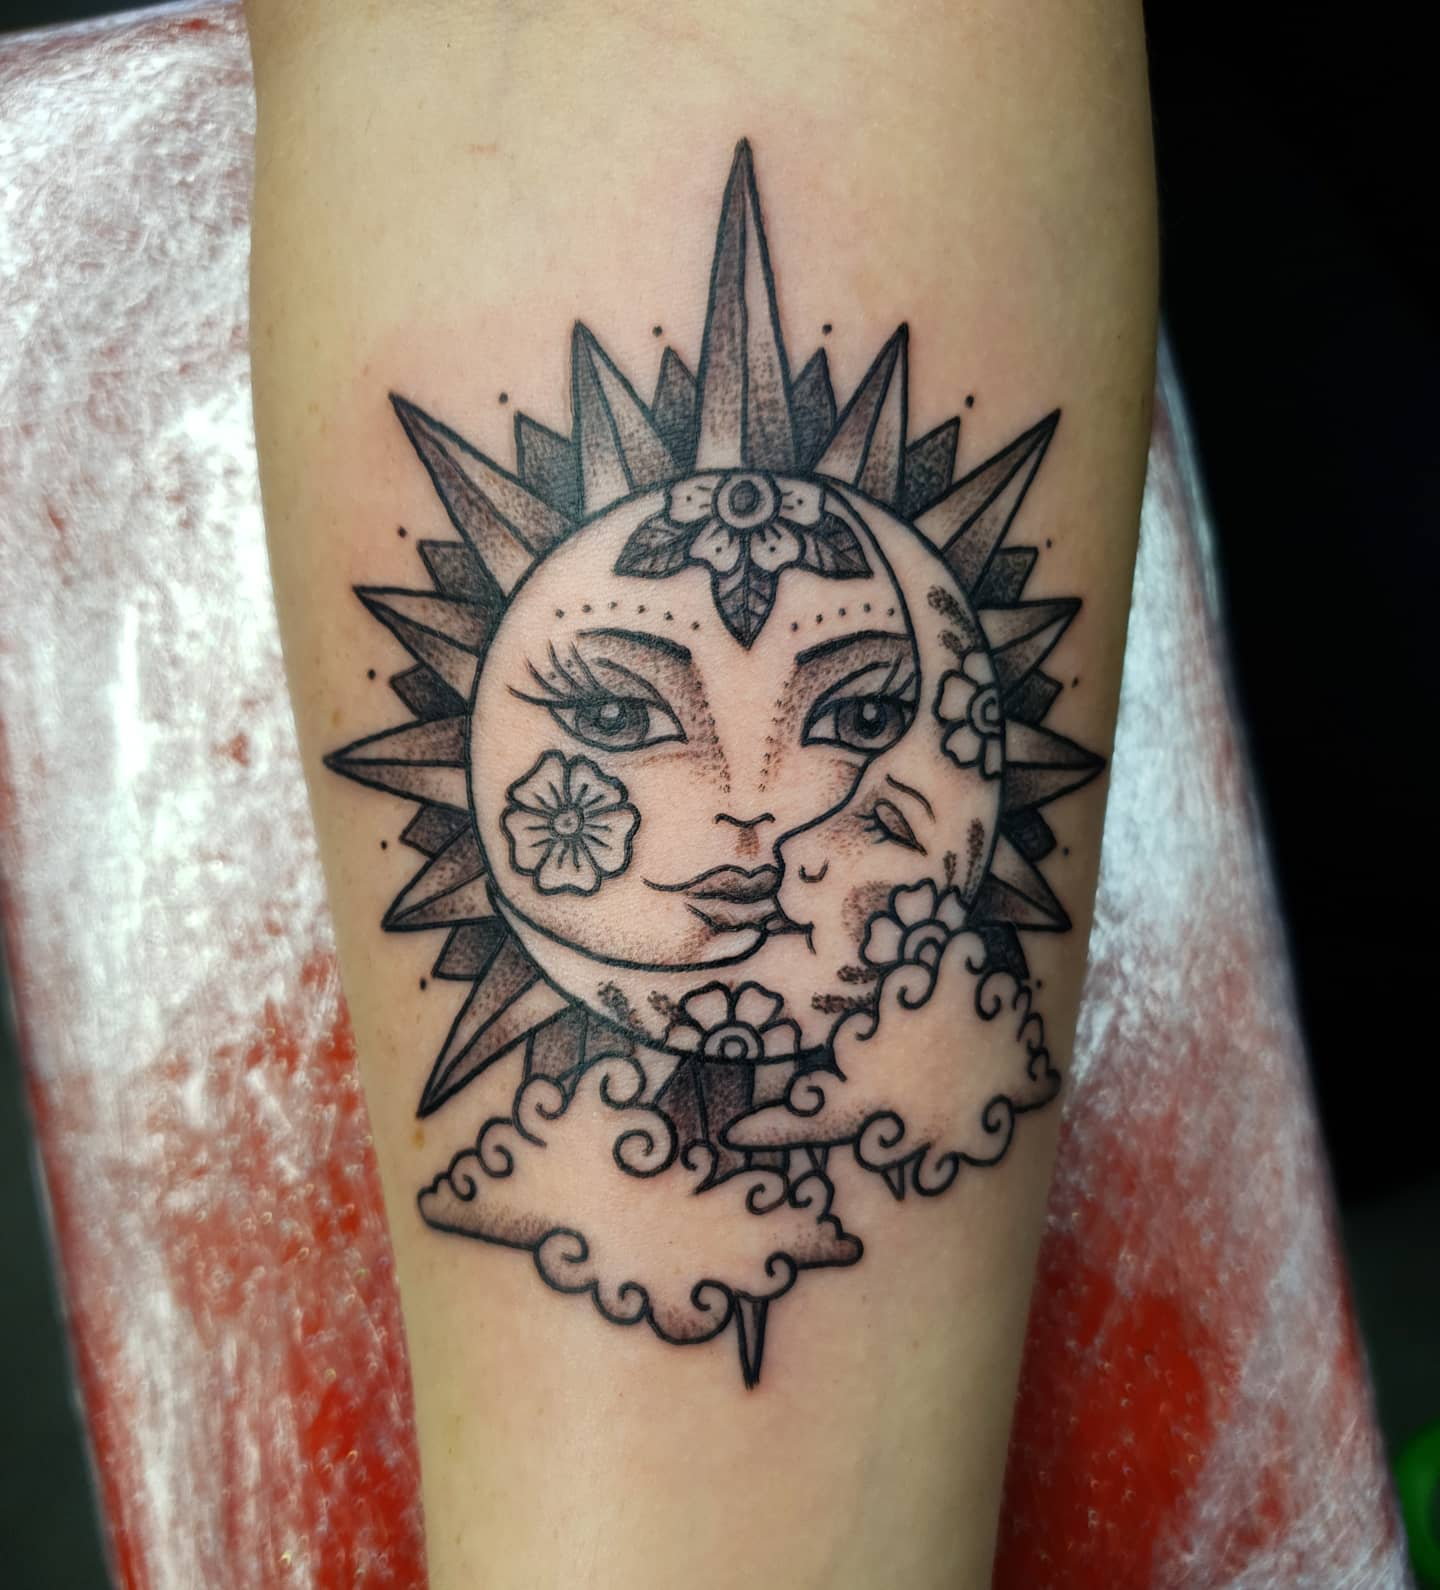 Cool one for Sasha from a week or two ago - thank you! Would love to do more like this. Made @studioxiiigallery  . . . suntattoo moontattoo sun moon clouds cloudtattoo dotworktattoo dotwork folkarttattoo traditionaltattoos tradition blackworktattoo blackinktattoo tattoos scottishtattooer edinburgh edinburghtattooer scotland tattoosbyalanross alrosstattoo studioxiiigallery studioxiii